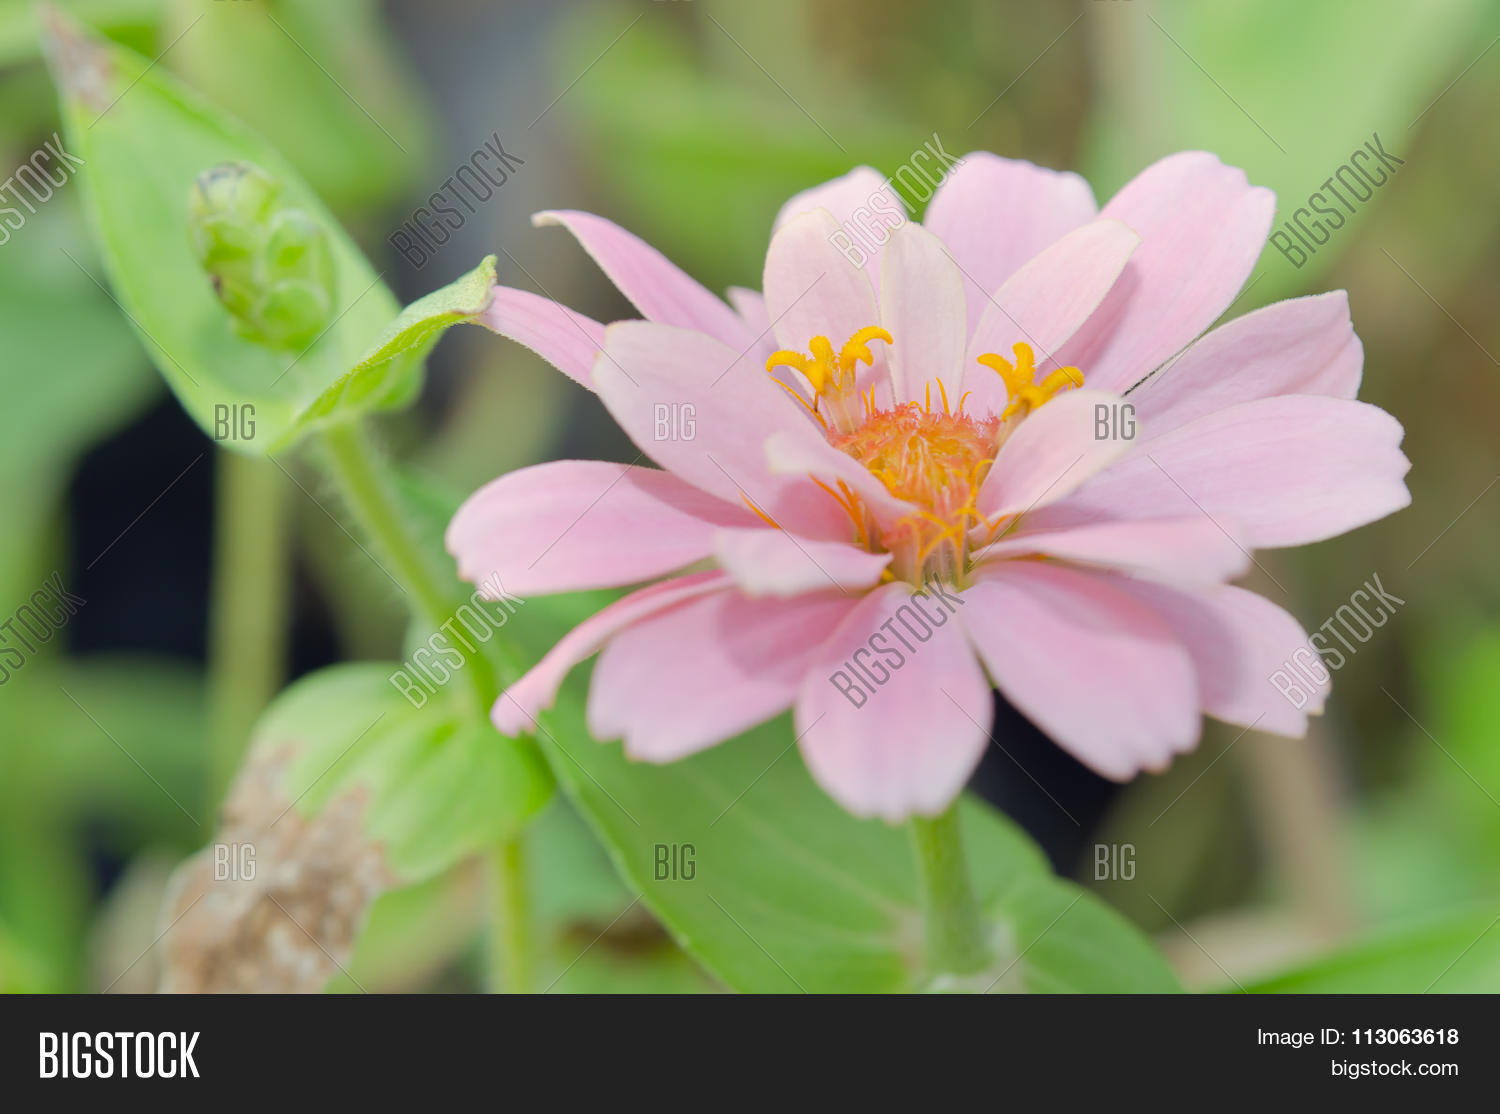 Pink aster flower rama image photo free trial bigstock pink aster flower in rama 9 local name national garden bangkok thailand mightylinksfo